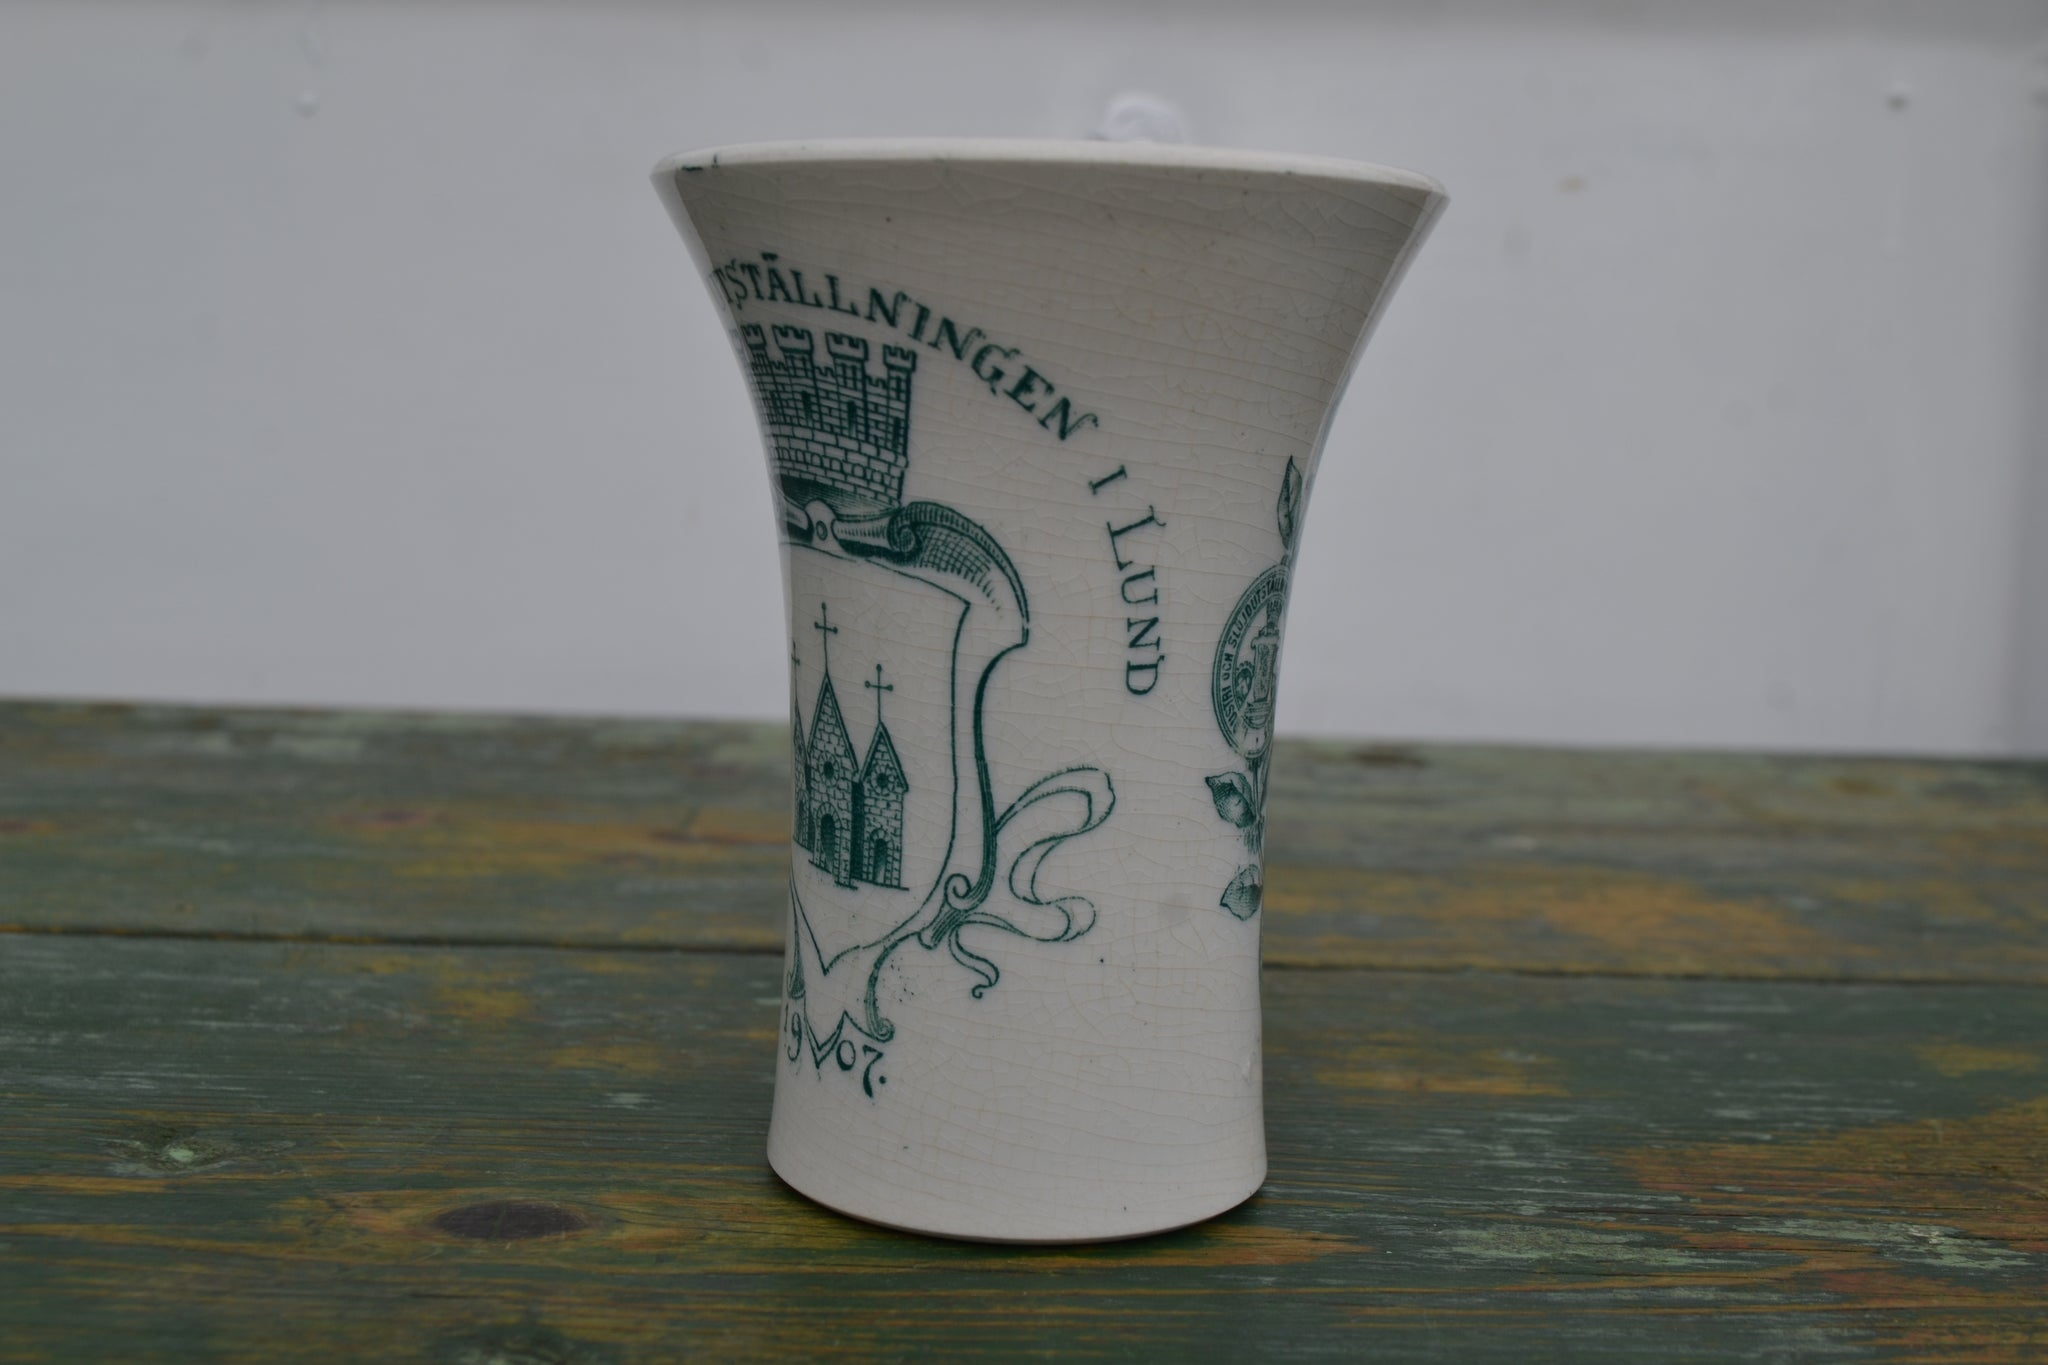 A commemorative Kaffe beaker from the 1907 Swedish Exhibition